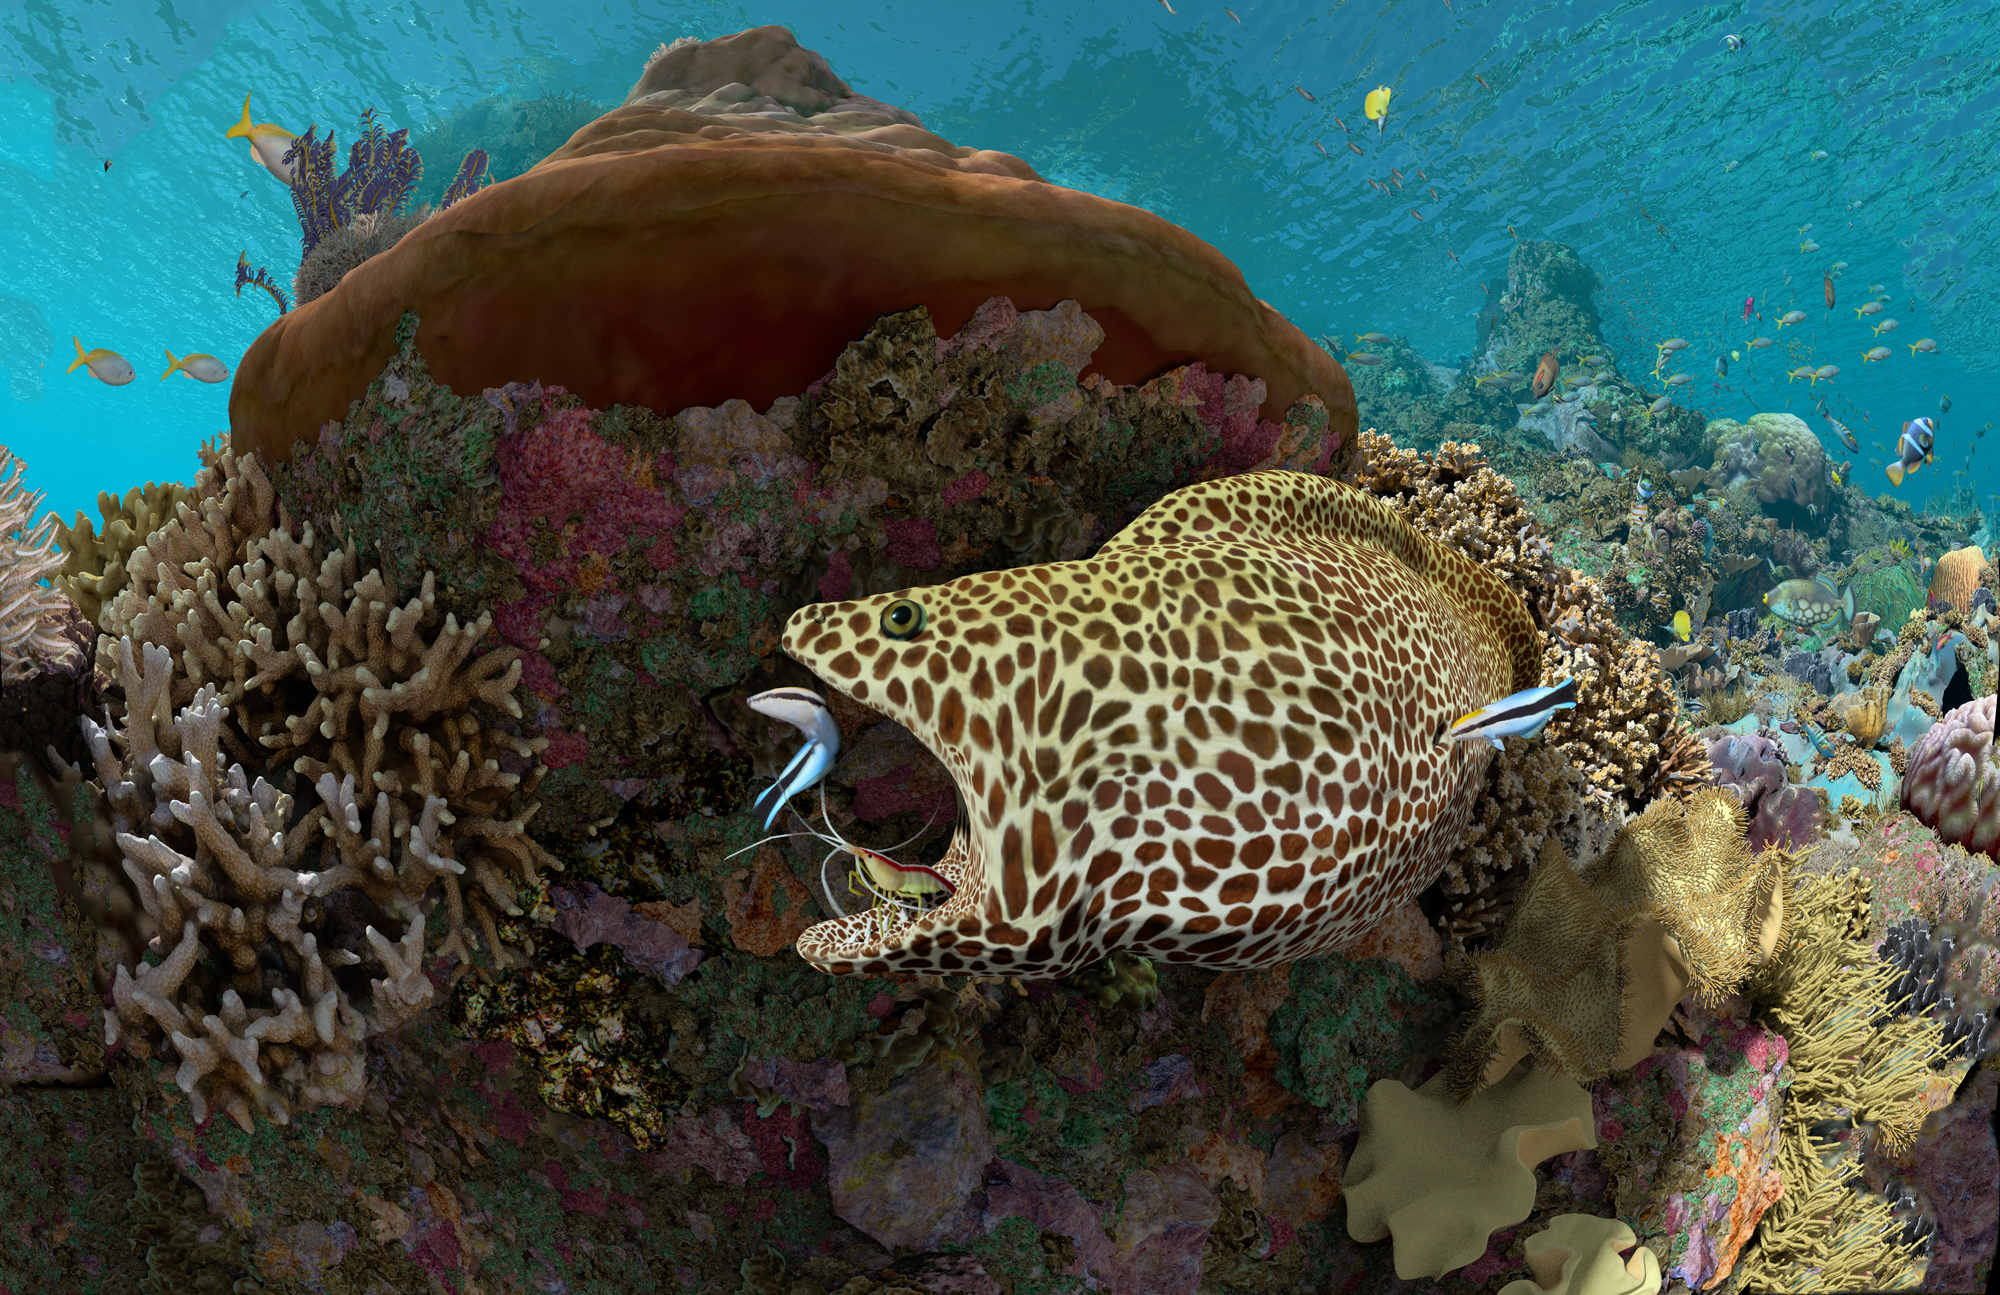 LNP: Expedition Reef